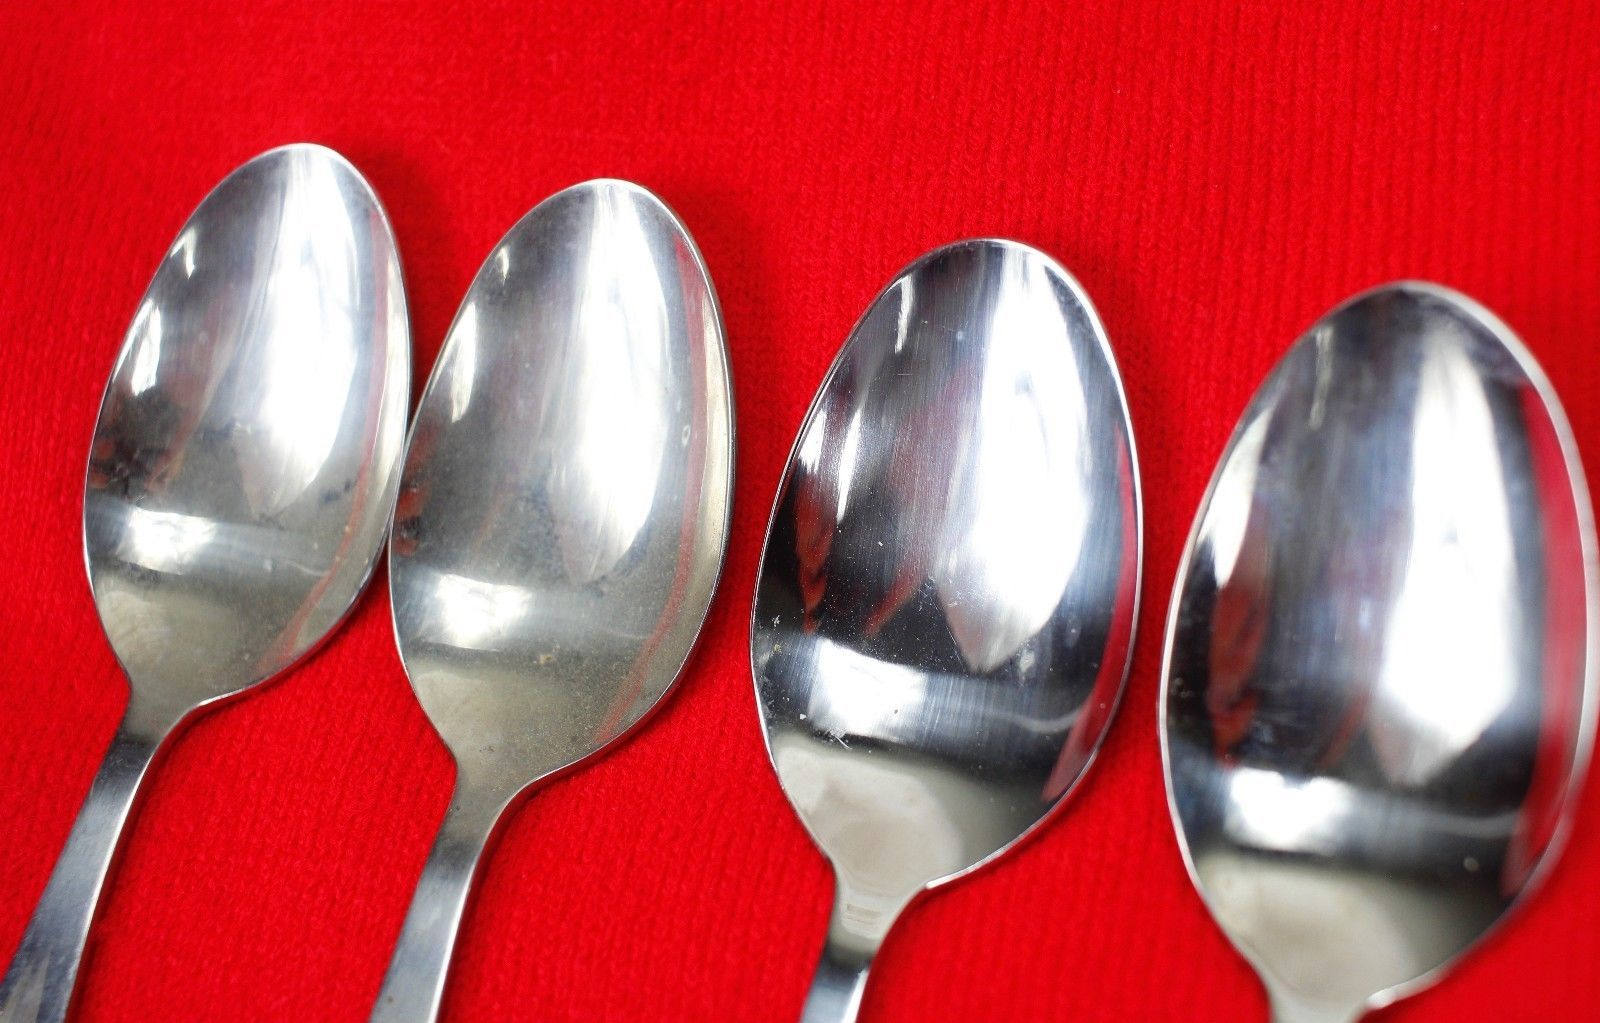 4X Teaspoons Spoons International Silver Cirque Stainless Glossy Flatware 6""